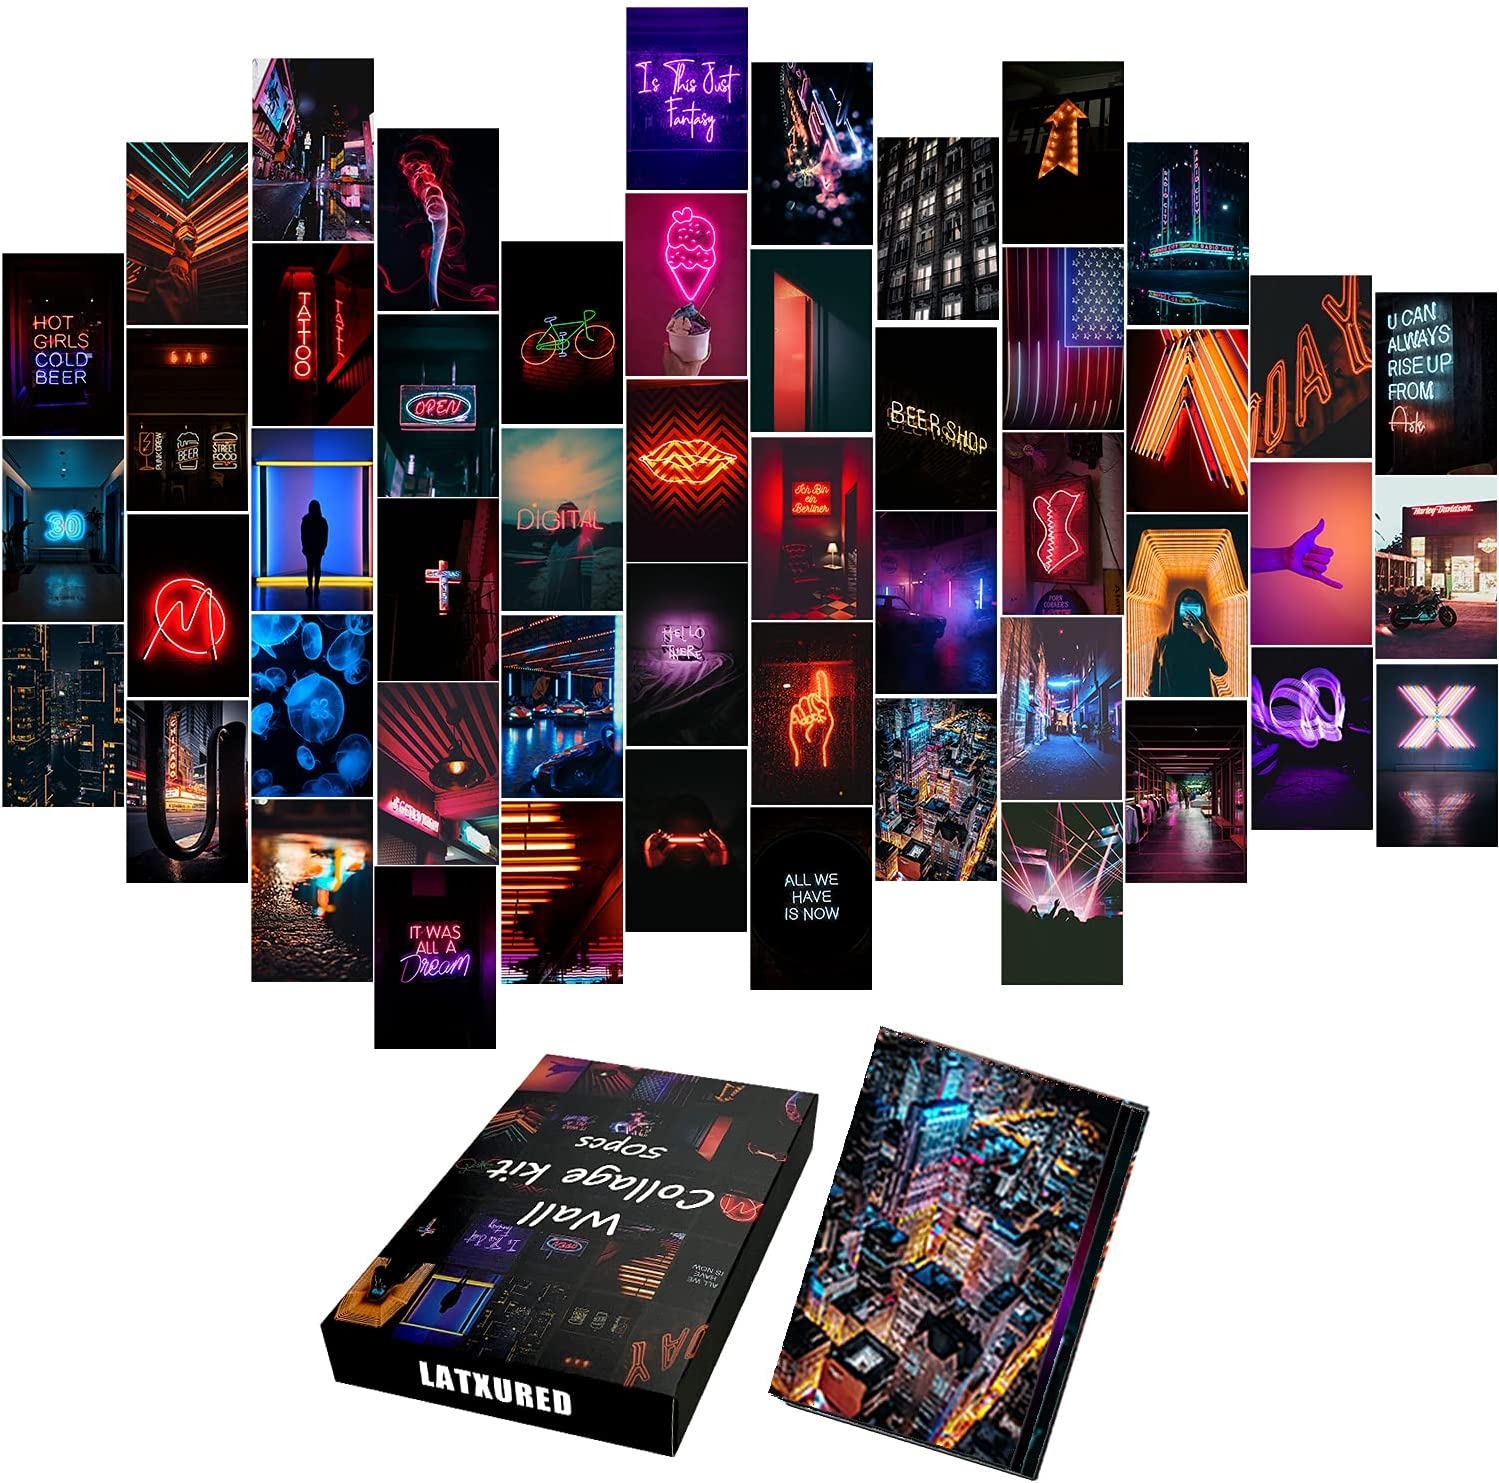 50PCS Neon Aesthetic Pictures Wall Collage Kit, Photo of Neon City Collections Collage Dorm Decors for Girl Teens and Women, Trendy Wall Art Prints Kit, Small Posters for Rooms